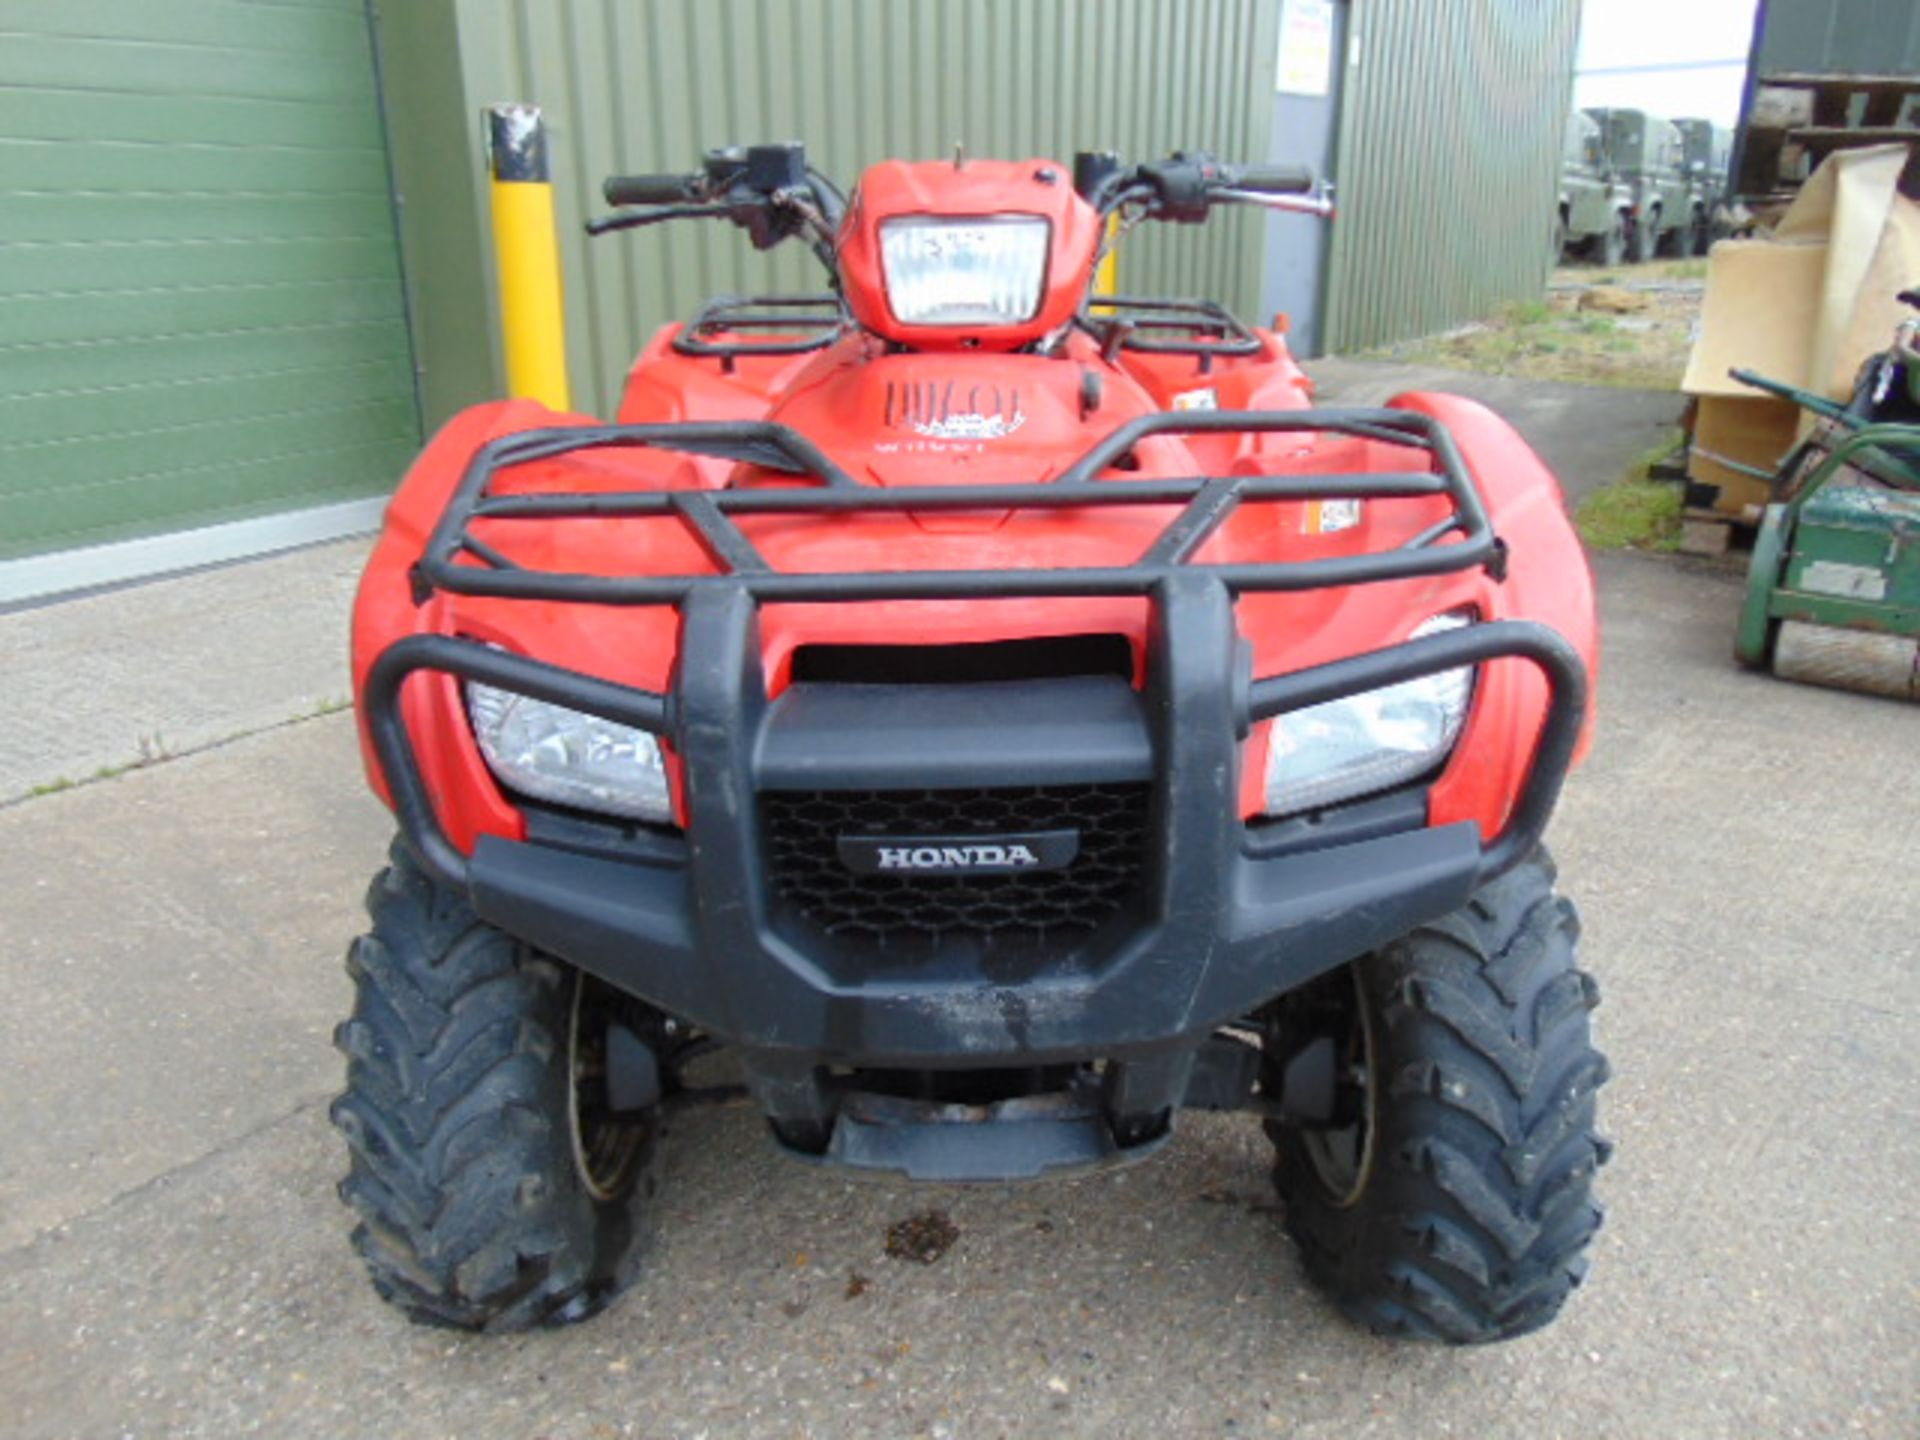 Honda TRX 500 4WD Quad Bike ONLY 2,300 HOURS! - Image 2 of 20